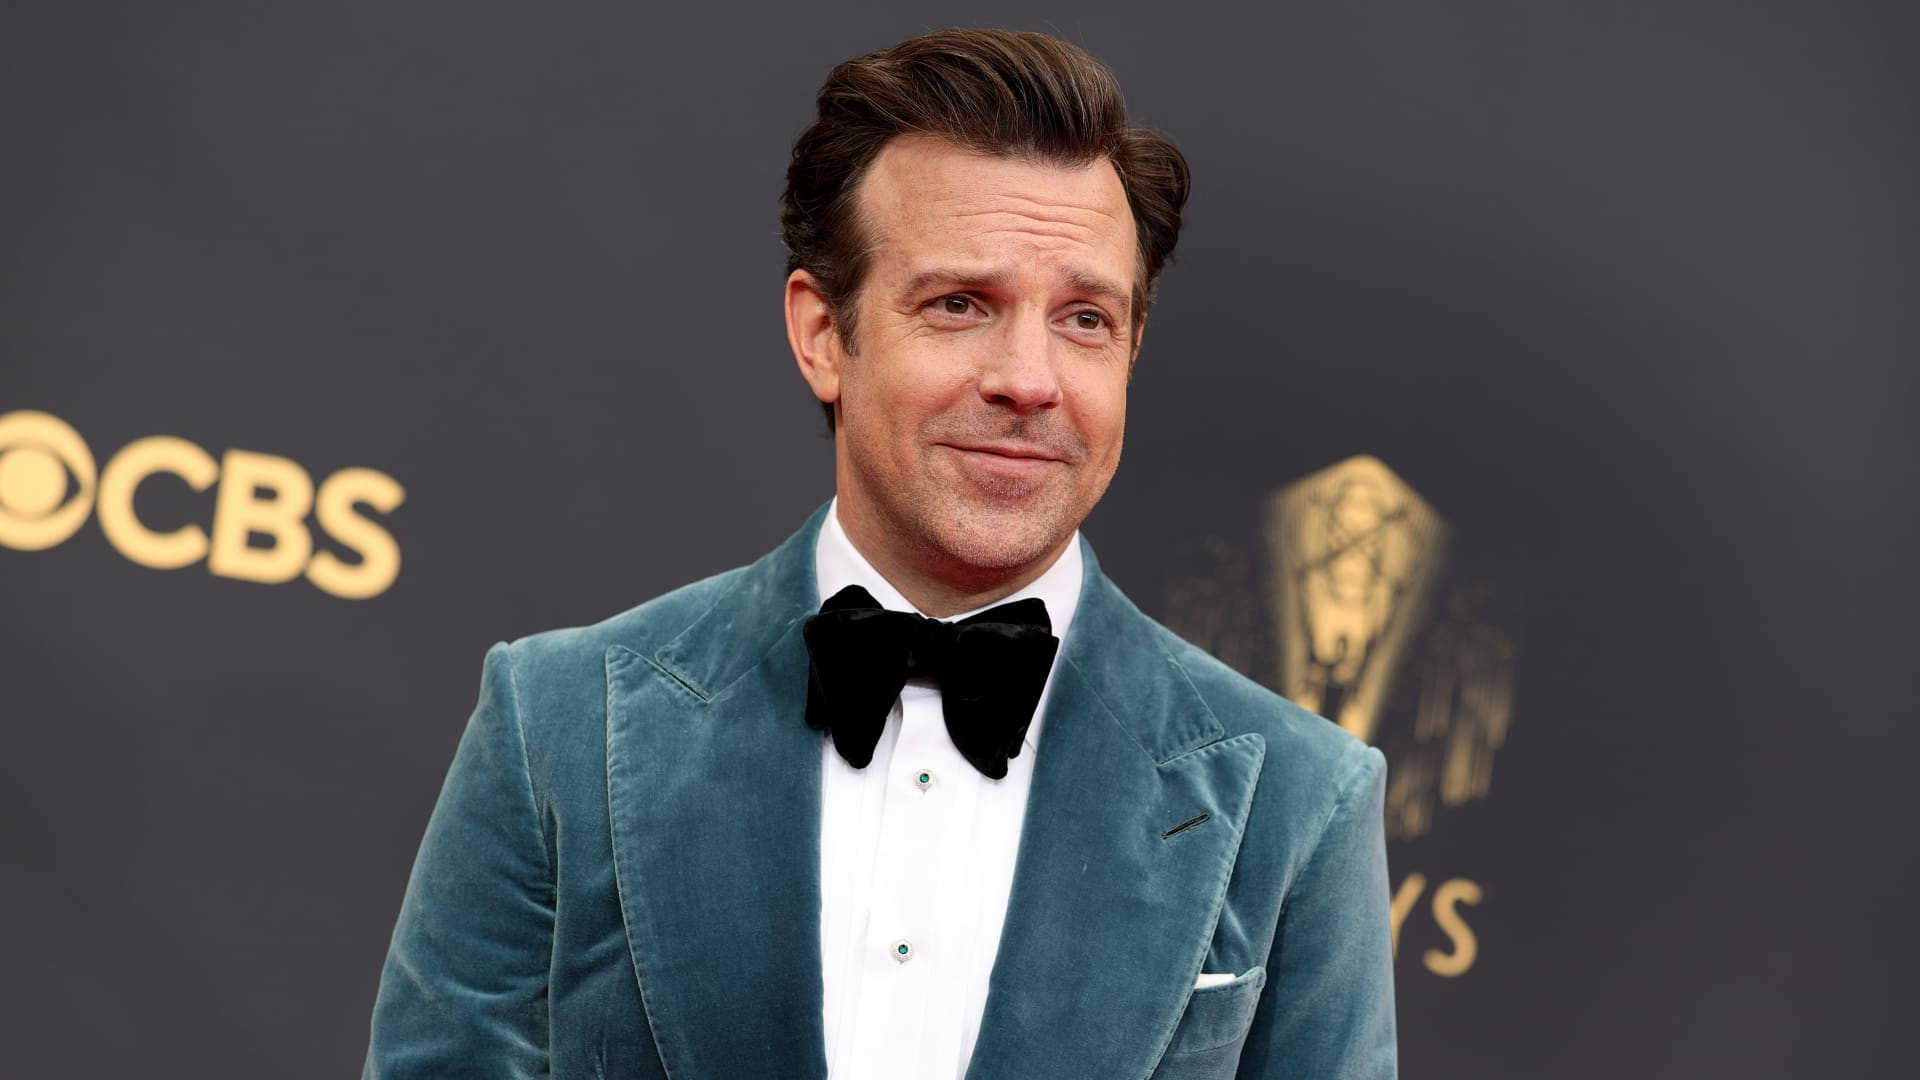 Jason Sudeikis attends the 73rd Primetime Emmy Awards at L.A. LIVE on September 19, 2021 in Los Angeles, California.